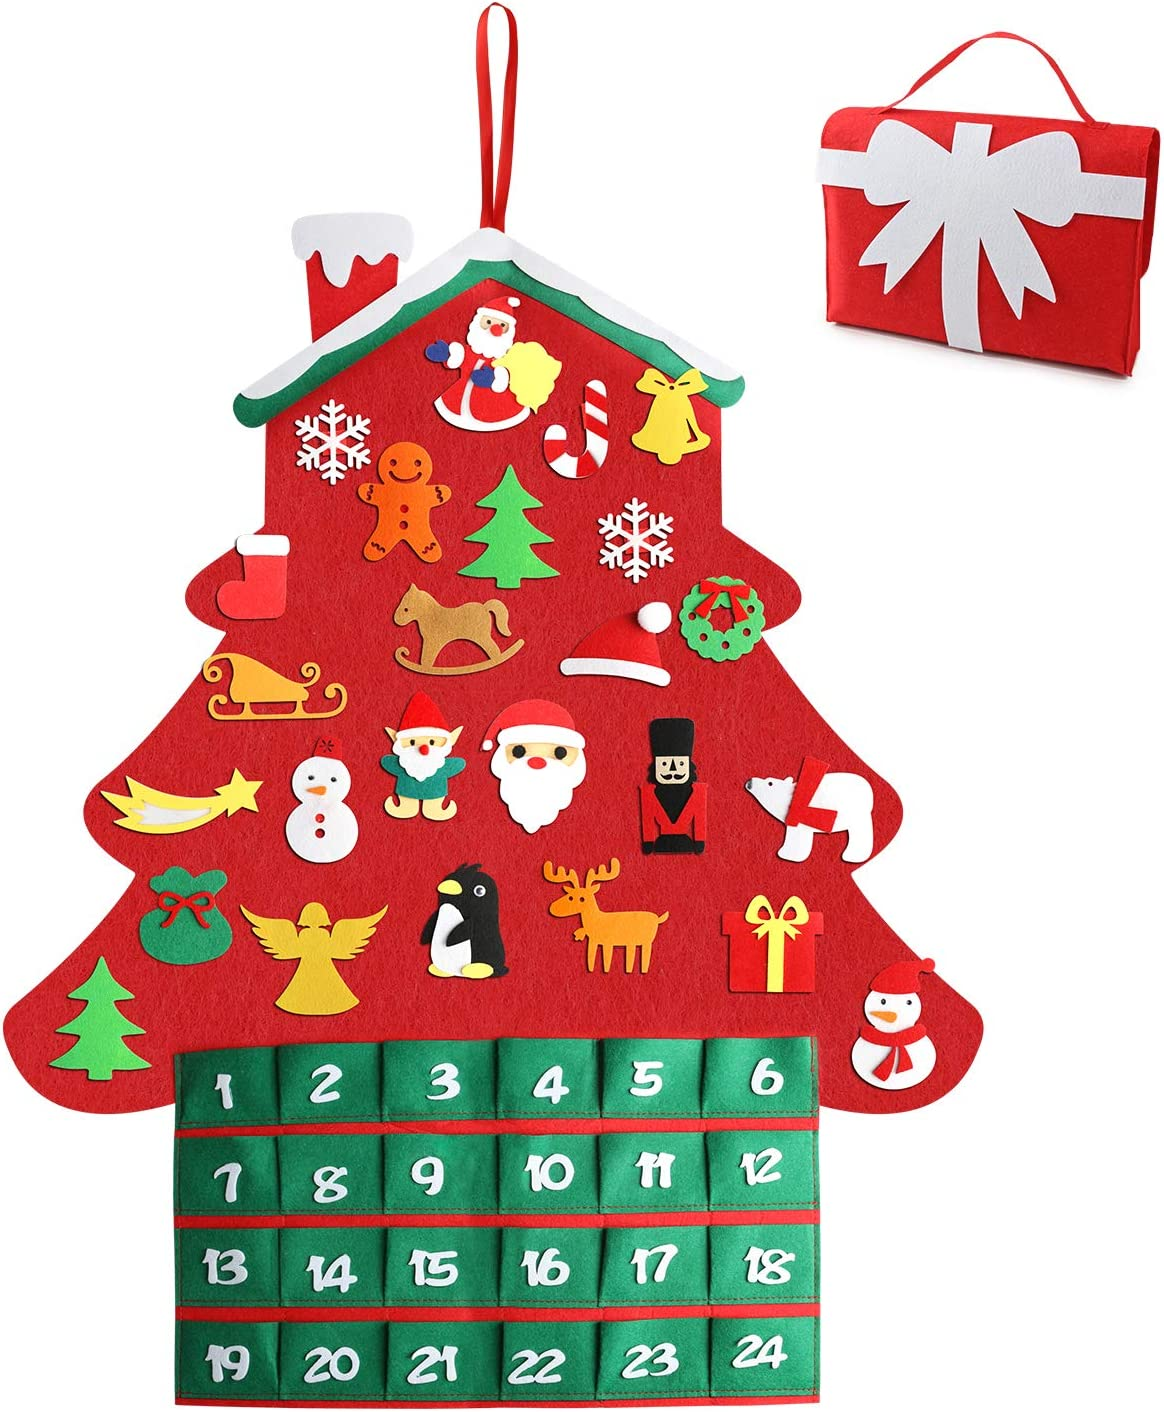 Henscoqi 2019 Newest Christmas Advent Calendar Felt Tree Ornaments,DIY Xmas Countdown Decorations Wall Door Hanging Gift for Kids